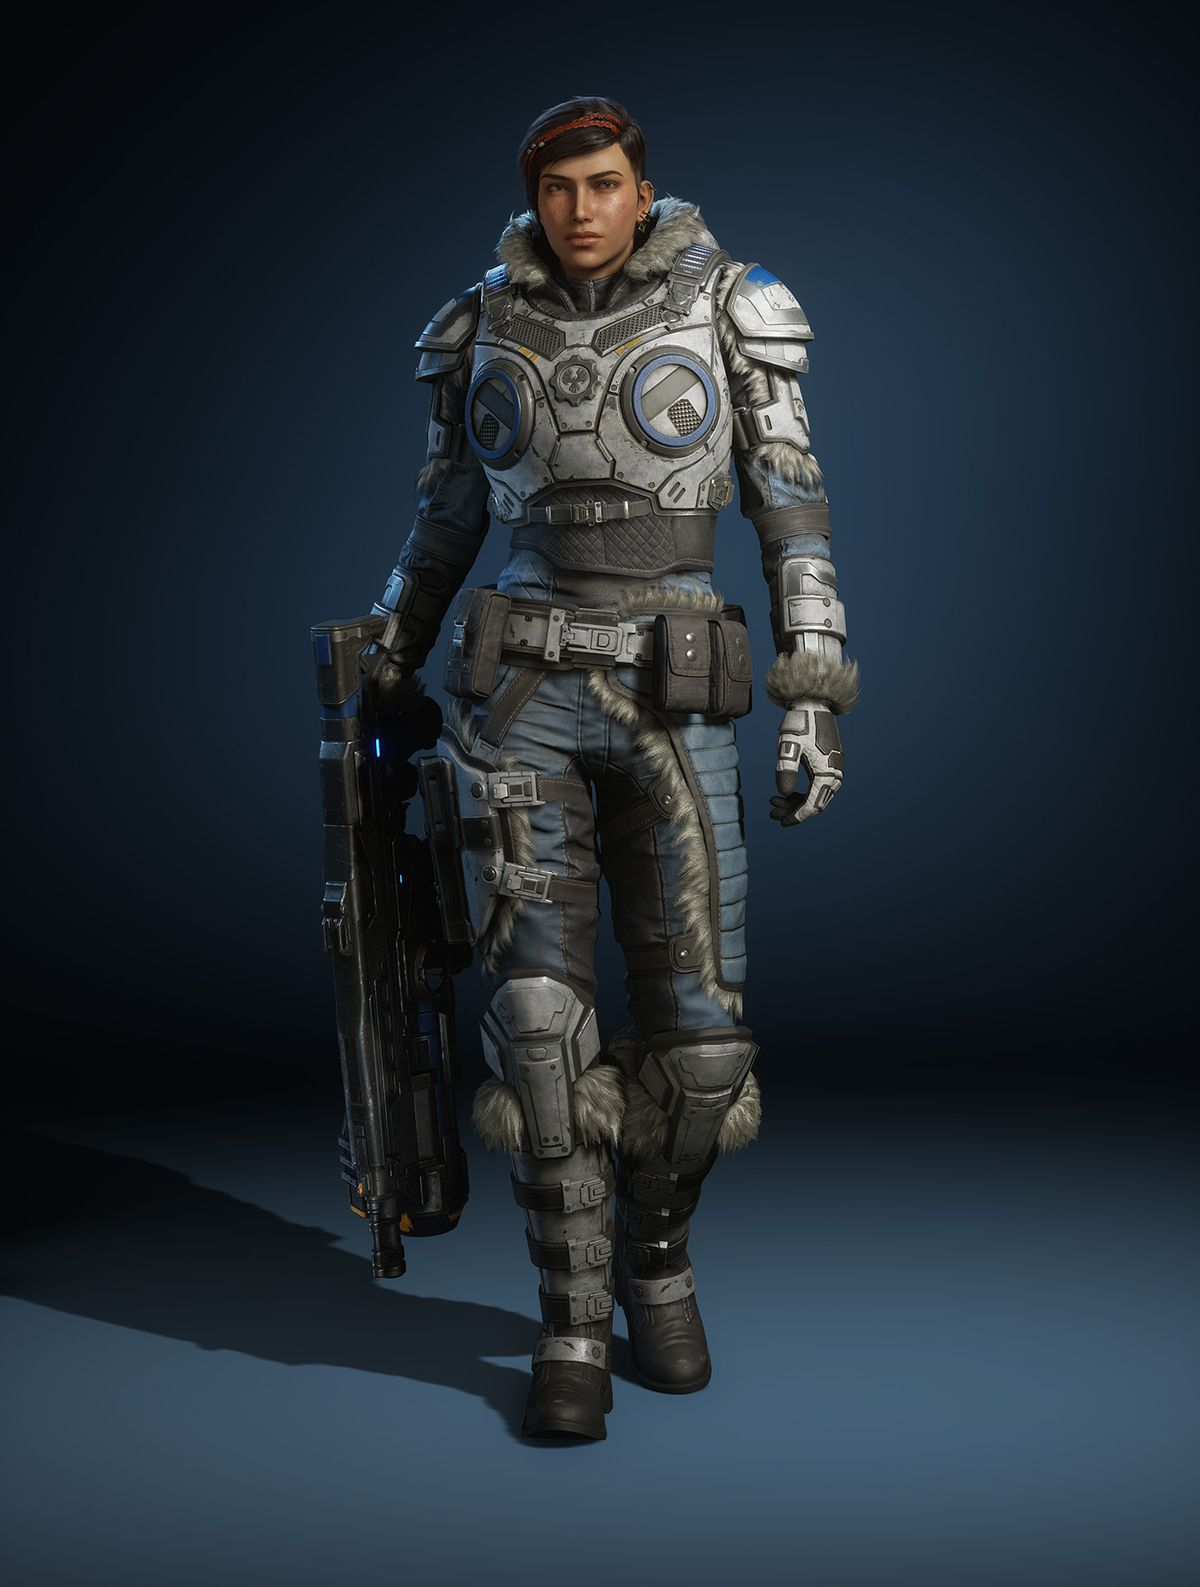 a render of the Gears 5 character Kait Diaz in a winter outfit holding a gun at her side